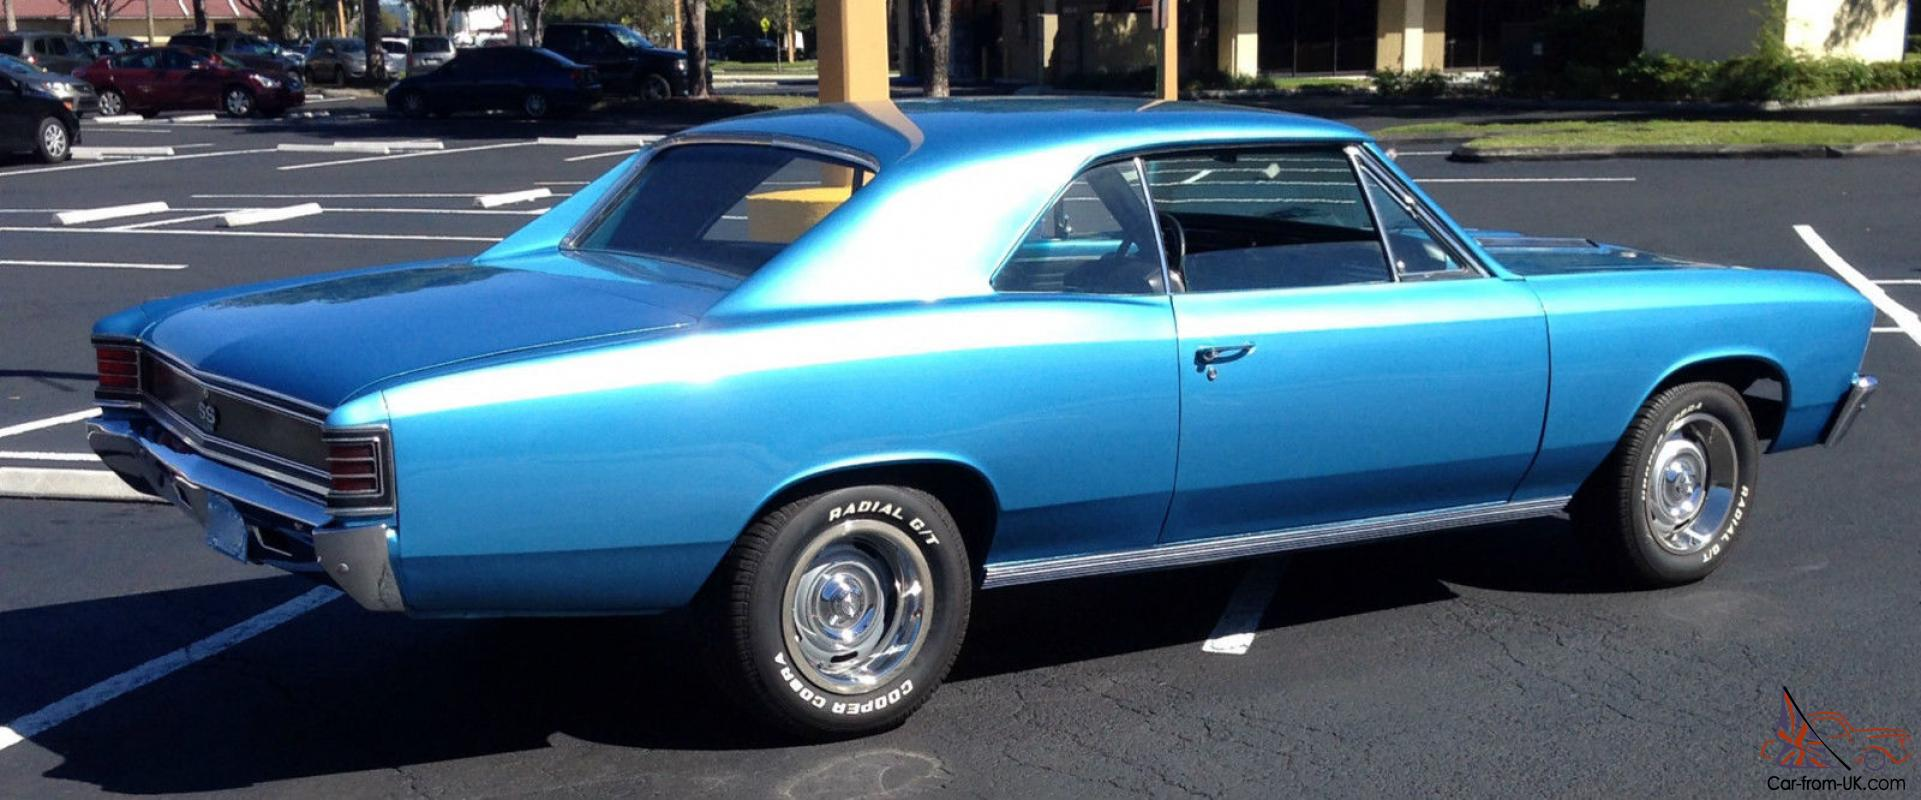 Sale further chevelles   showroom data 504 medium 100 6533 furthermore 201653074935 as well MUNCIE M23W 4 SPEED TRANSMISSION SEVERE DUTY STREETSTRIP WIDE RATIO furthermore 1967 Buick Skylark Gs400 True Buick Front Back 100 Bangshift Approved Buy. on 1967 chevelle parts for sale on ebay